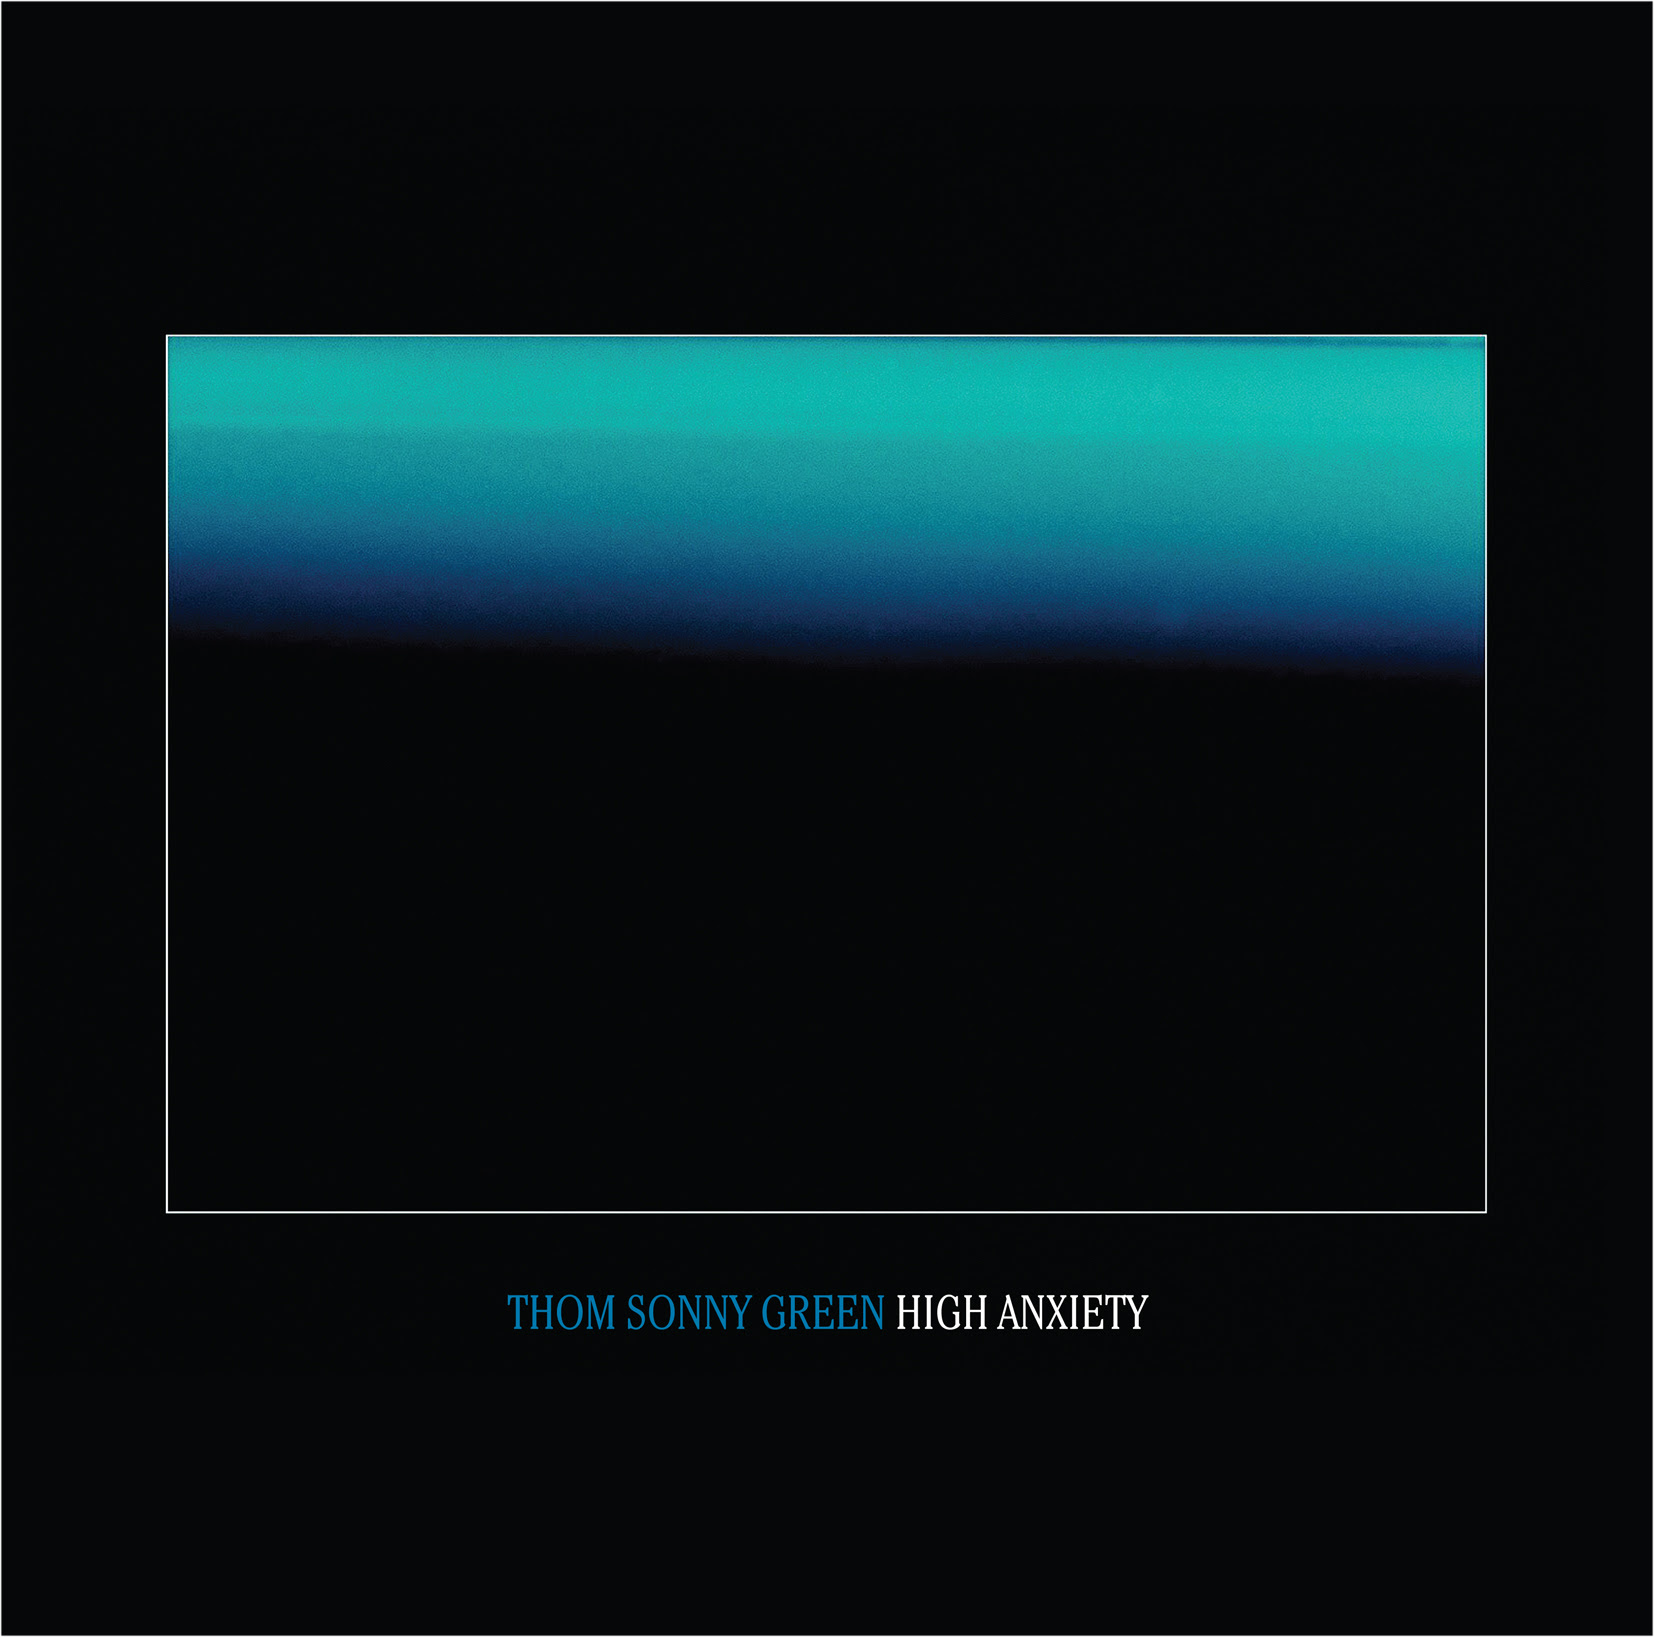 Listen to Thom Sonny Green's debut album 'High Anxiety' in full